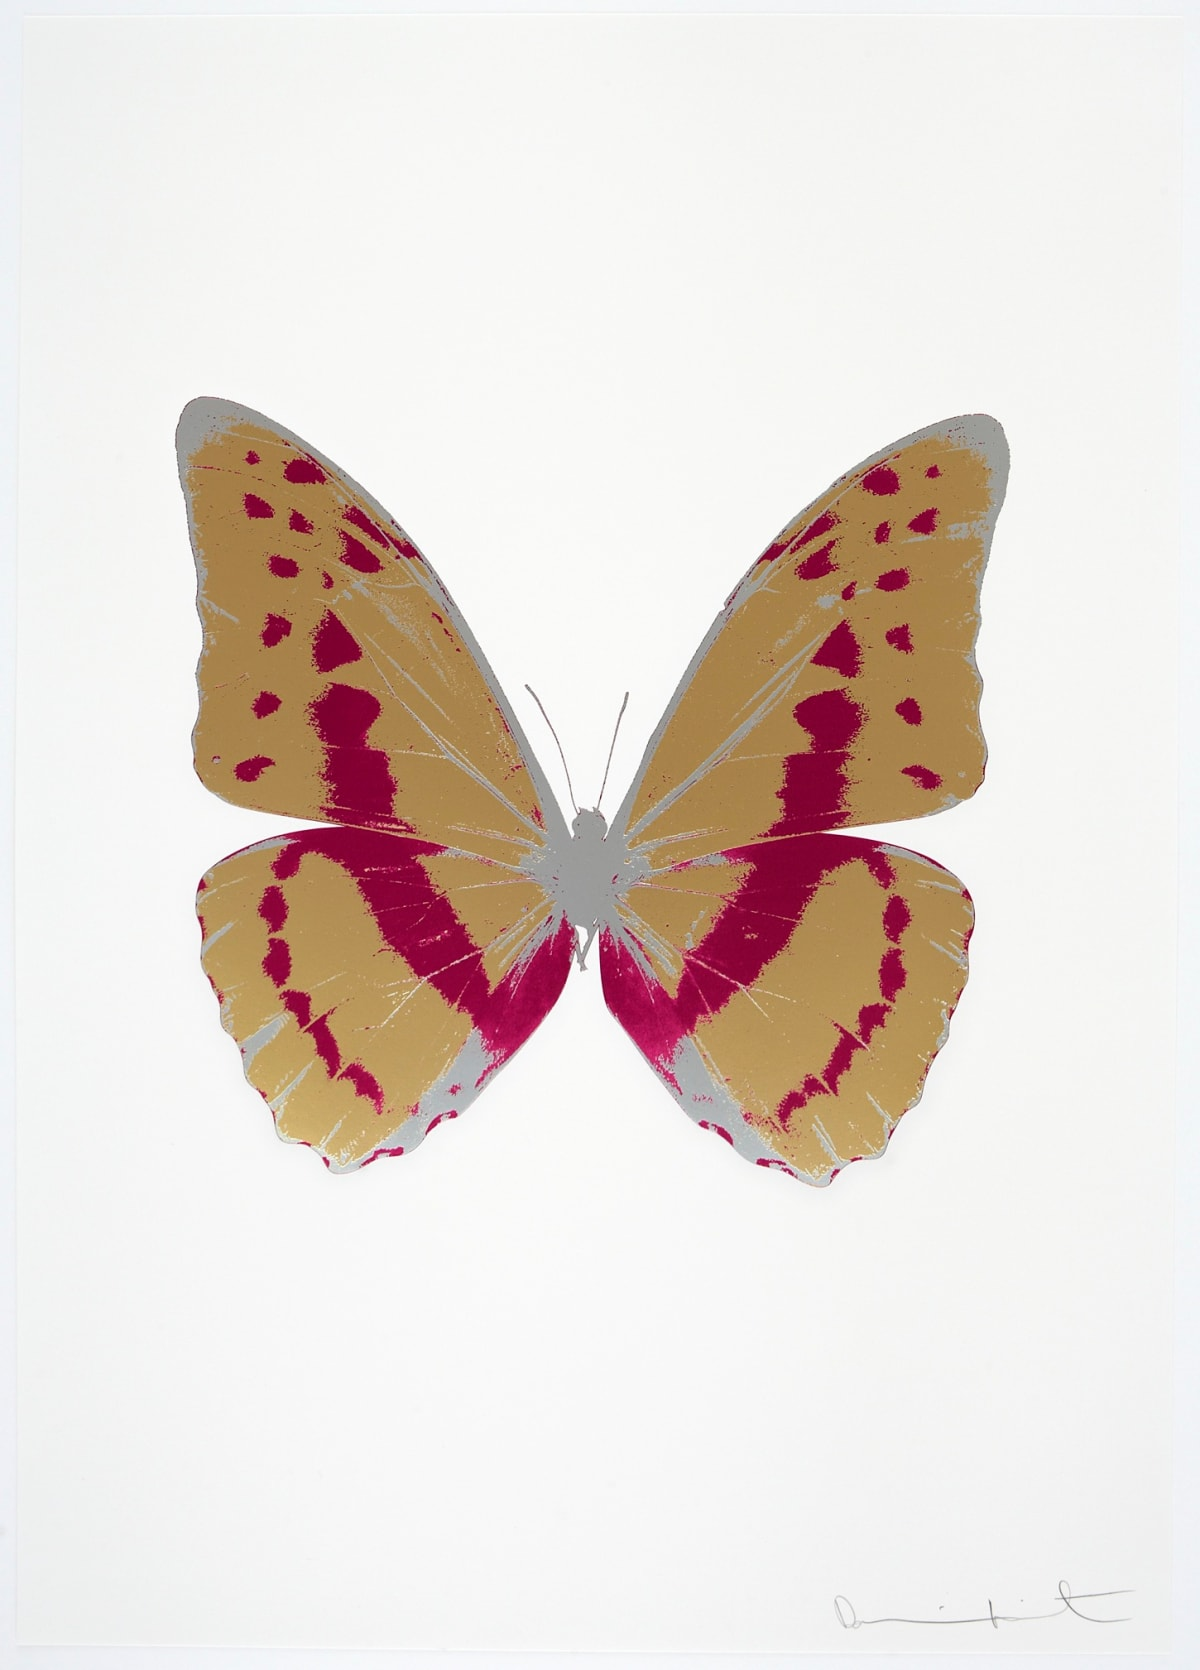 Damien Hirst The Souls III - Hazy Gold/Fuchsia Pink/Silver Gloss, 2010 3 colour foil block on 300gsm Arches 88 archival paper. Signed and numbered. Published by Paul Stolper and Other Criteria 72 x 51cm OC7971 / 660-74 Edition of 15